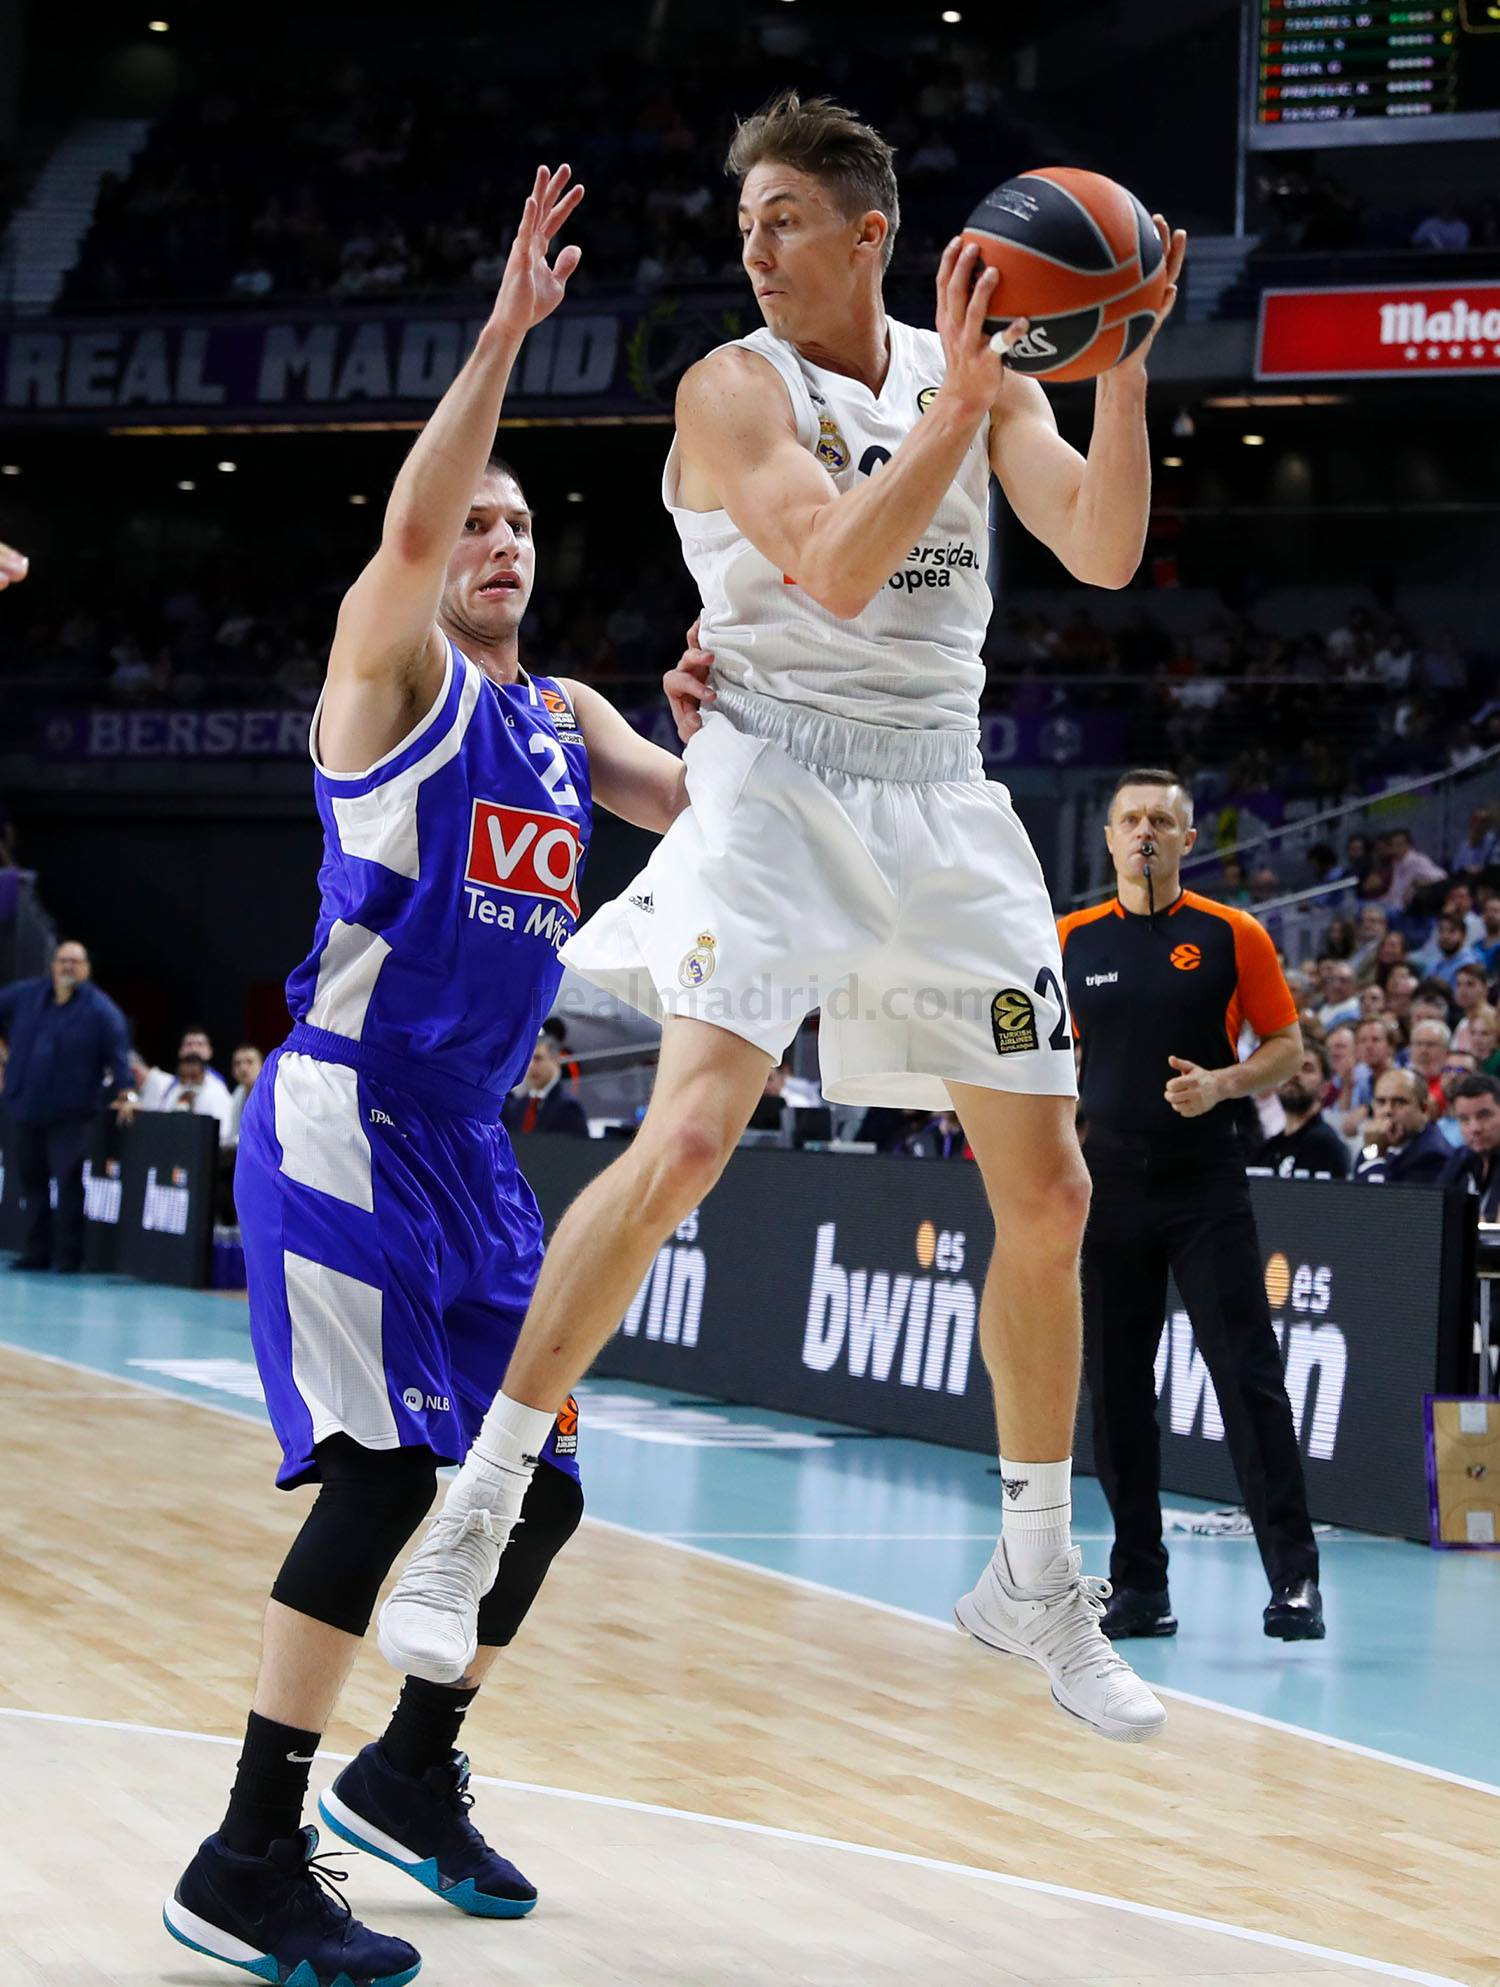 Real Madrid - Real Madrid - Buducnost - 25-10-2018